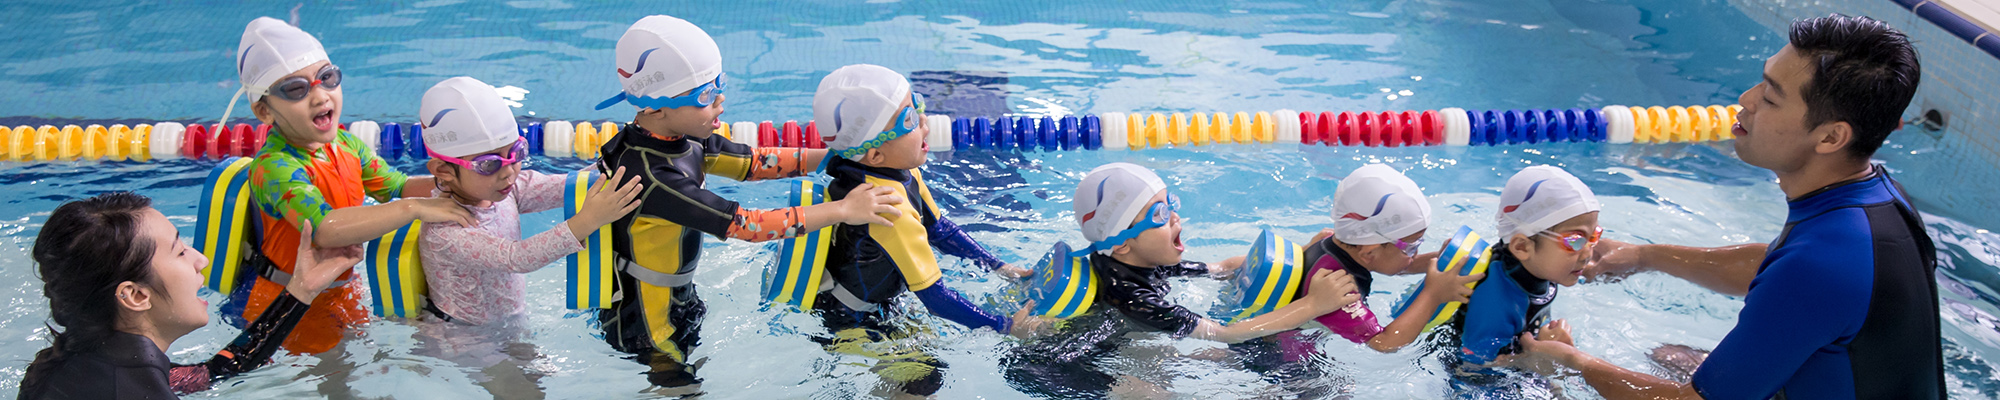 Win Tin Swimming Club - Summer Course 1